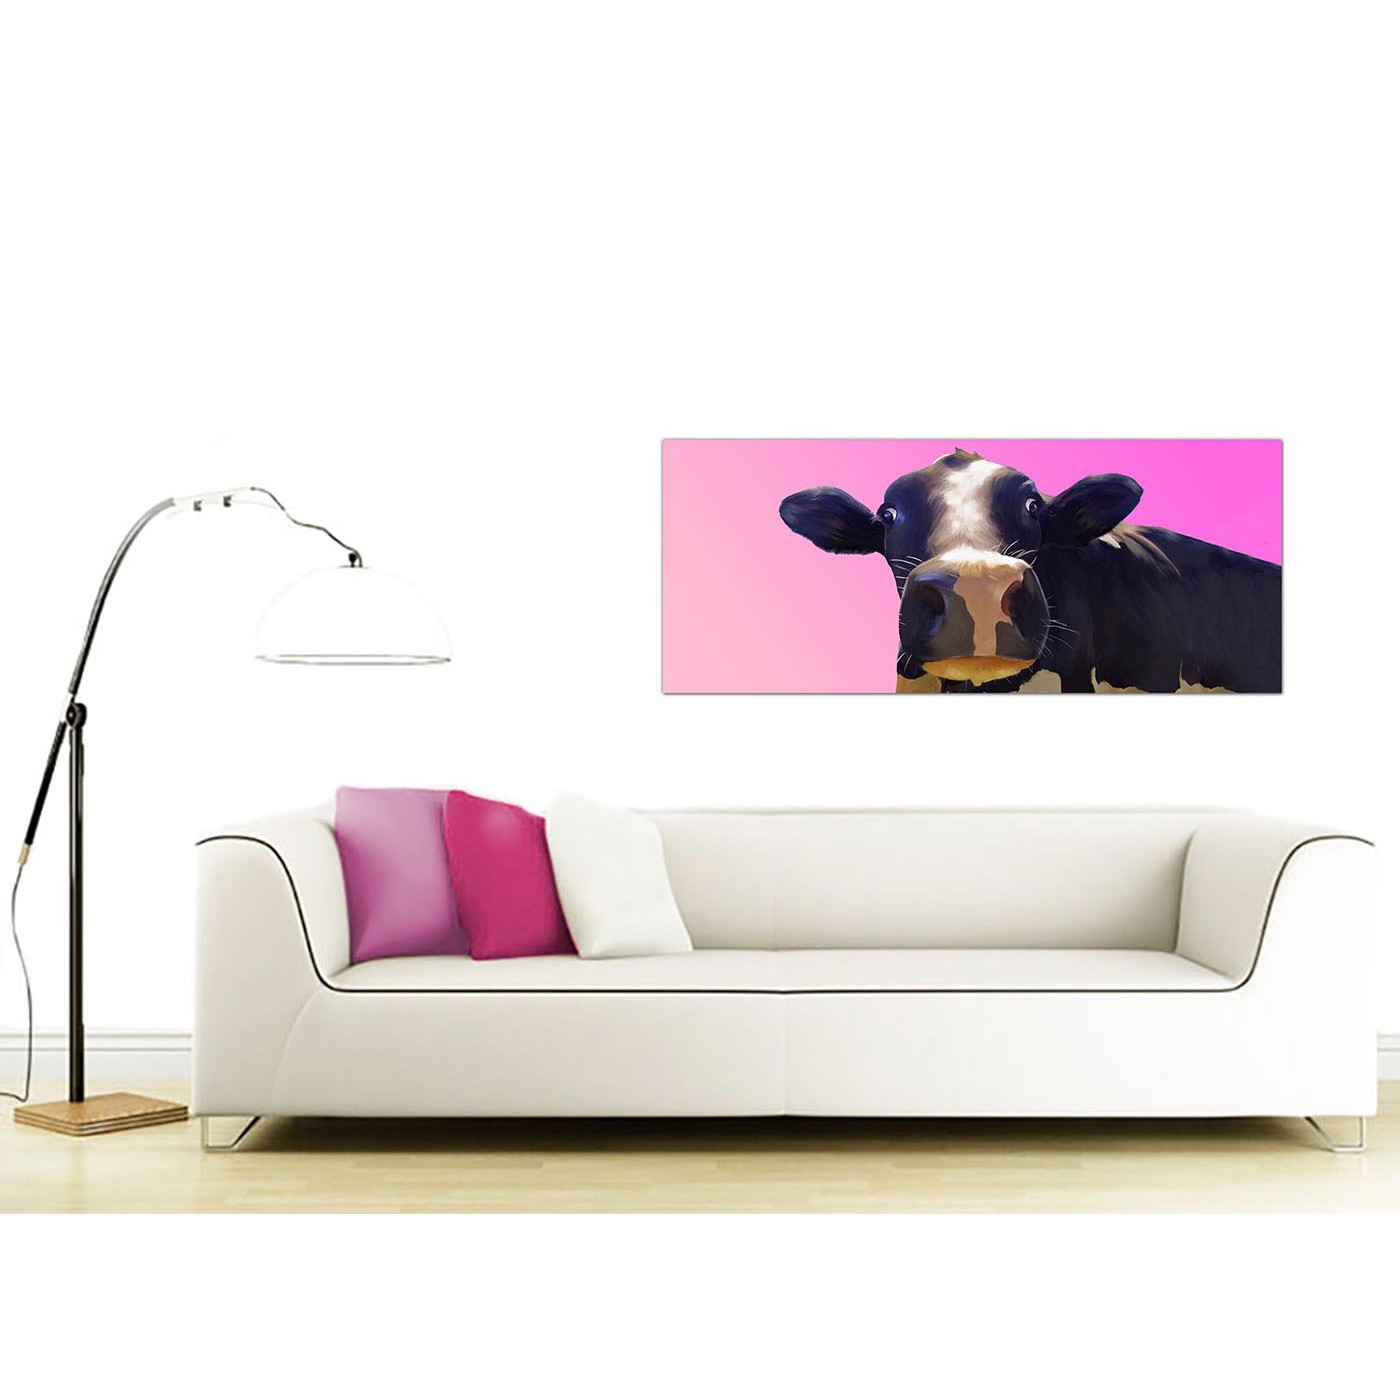 Large Canvas Prints Cheap Large Pink Canvas Prints Of A Cow